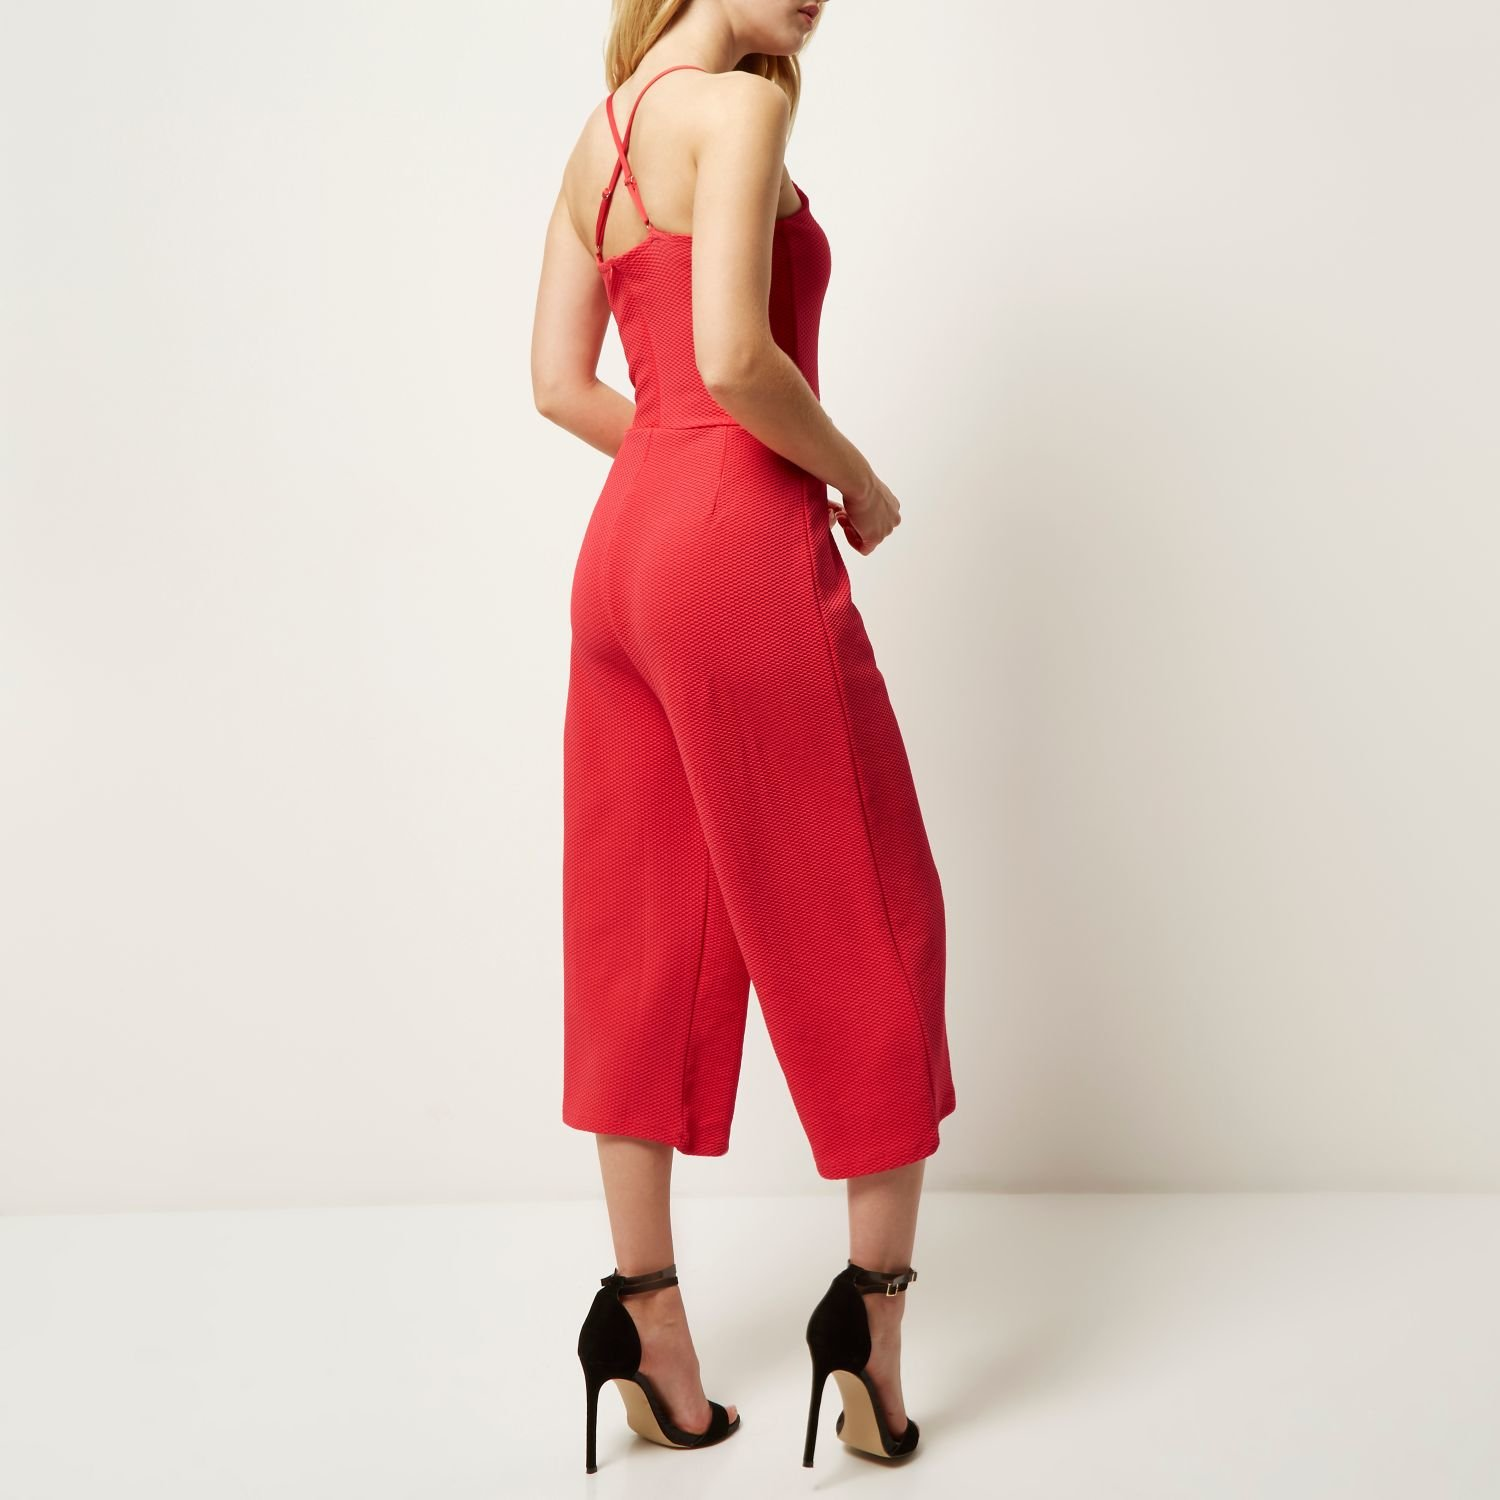 200be261728 Lyst - River Island Pink Textured Culotte Jumpsuit in Pink